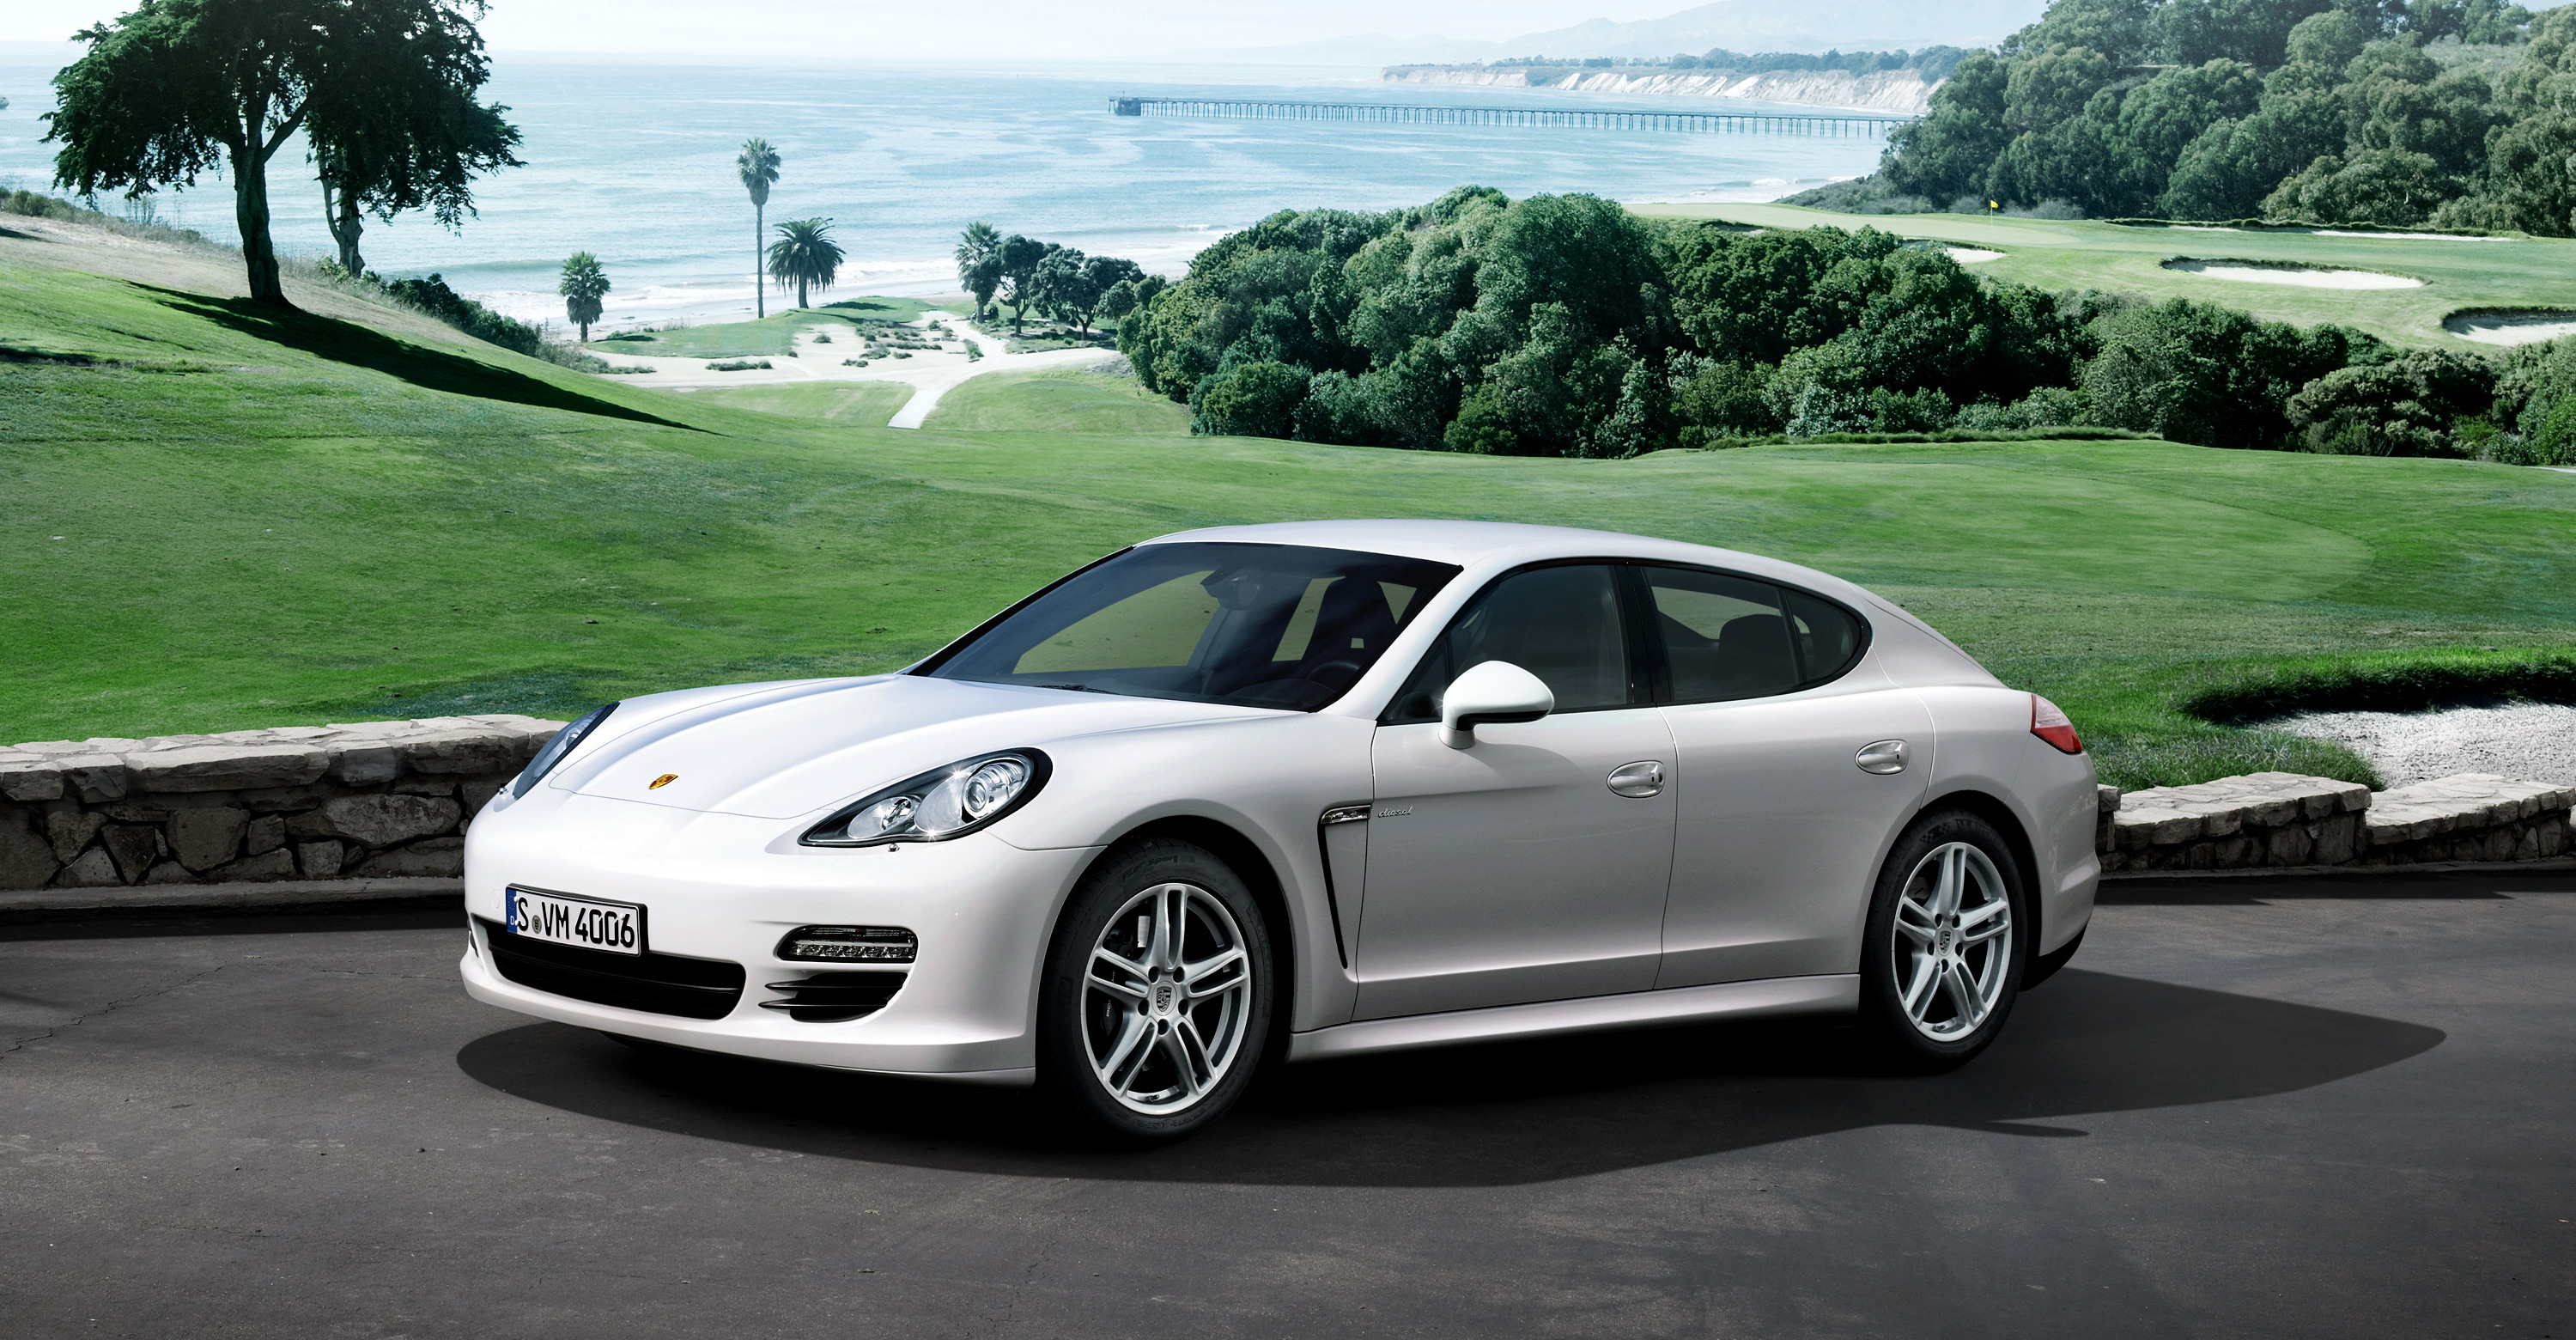 Porsche Panamera Lease >> 2011 White Porsche Panamera Diesel wallpapers